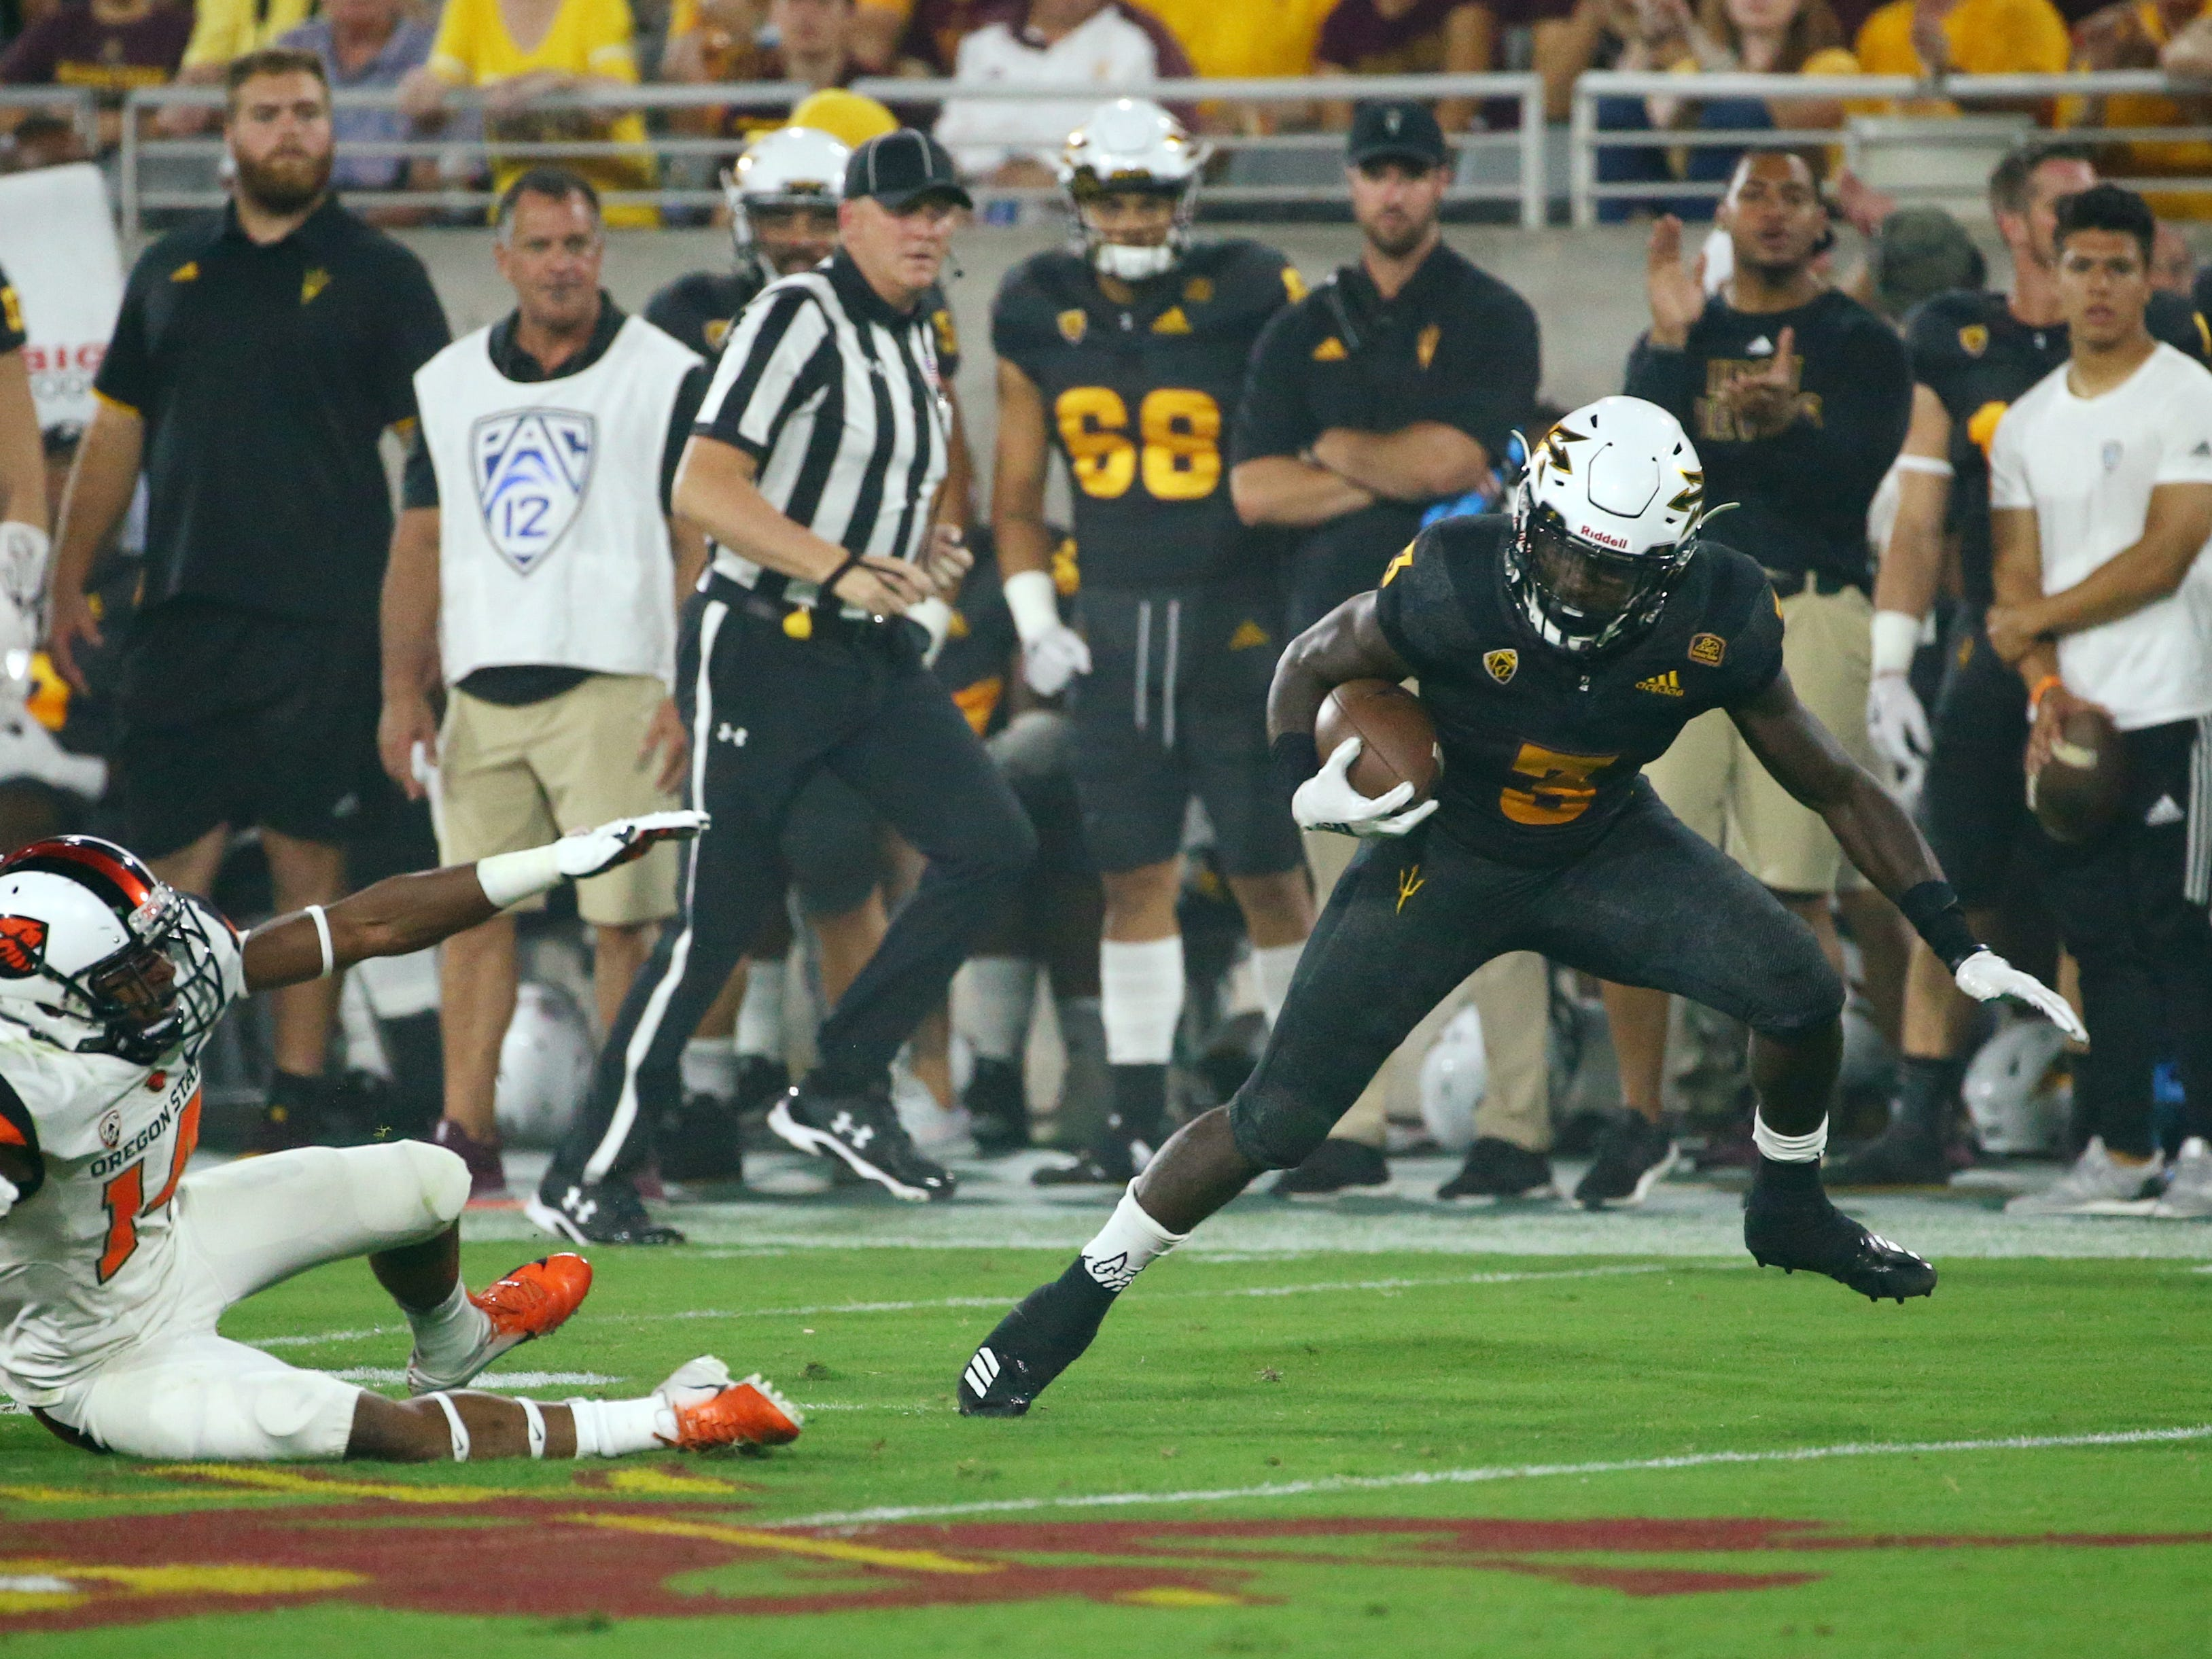 Arizona State running back Eno Benjamin breaks three tackles and runs for a touchdown against Oregon State in the first half on Sep. 29, 2018, at Sun Devil Stadium.